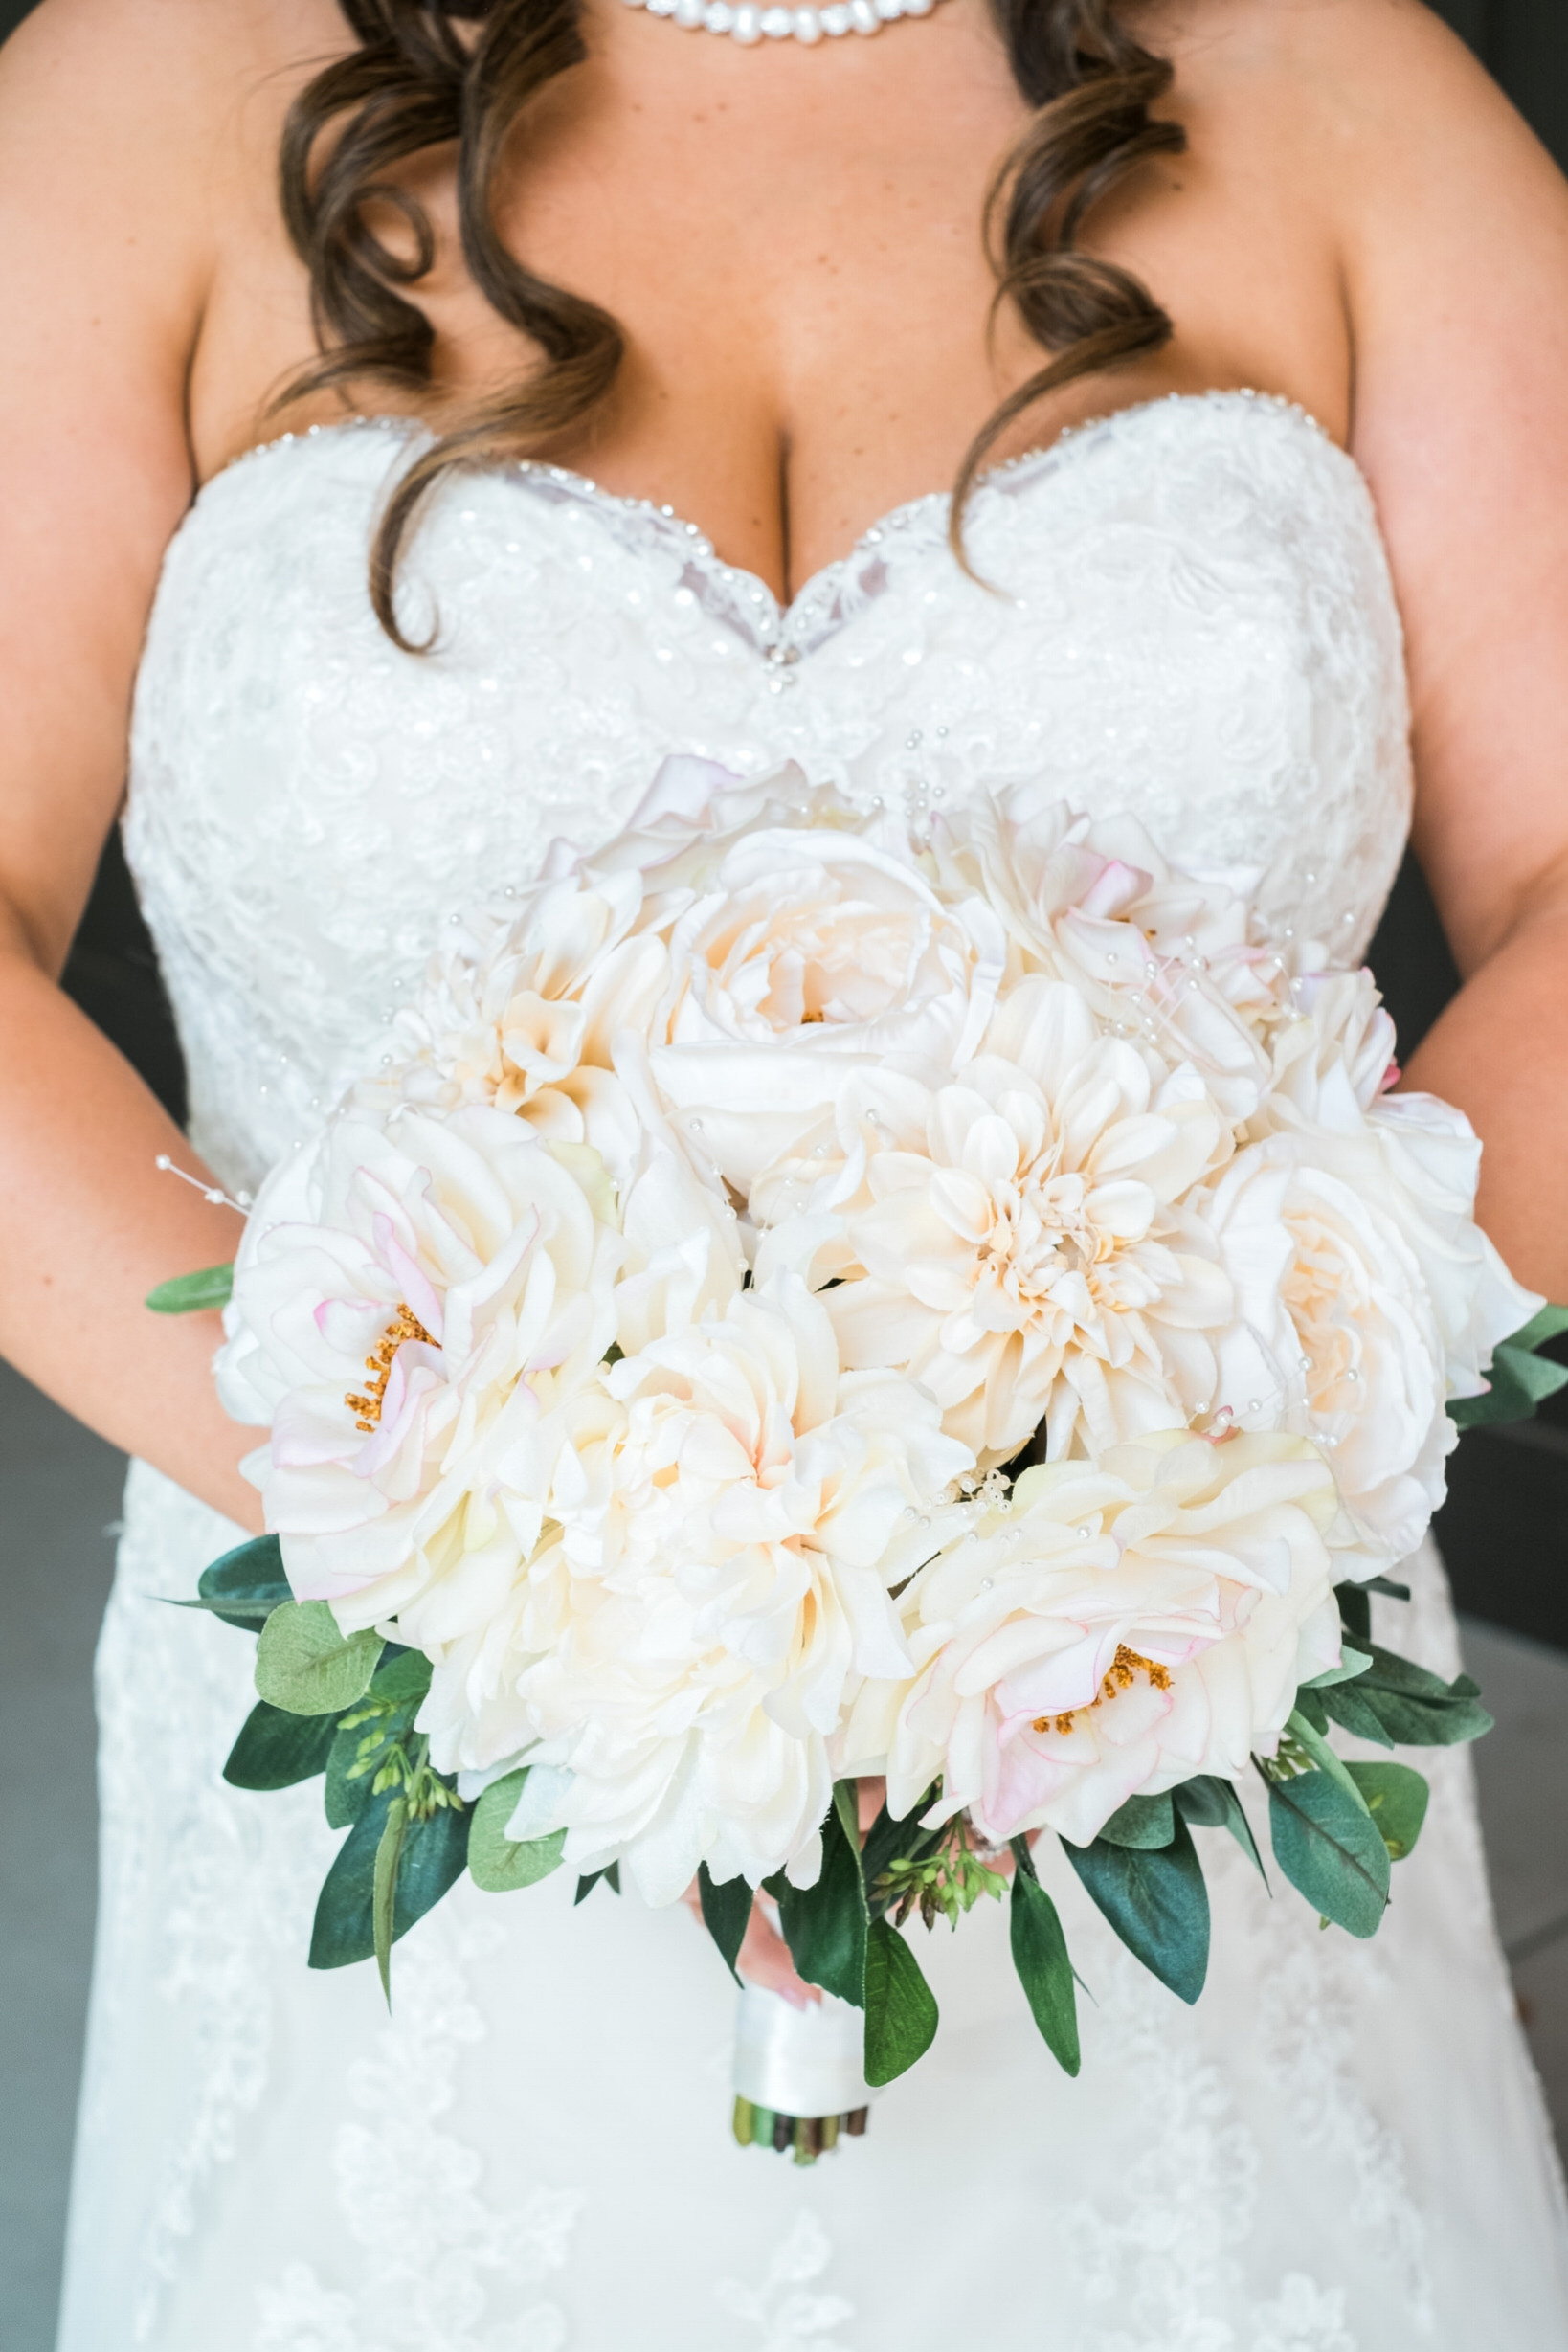 bridal bouquet at Grand View Lodge in Brainerd, MN